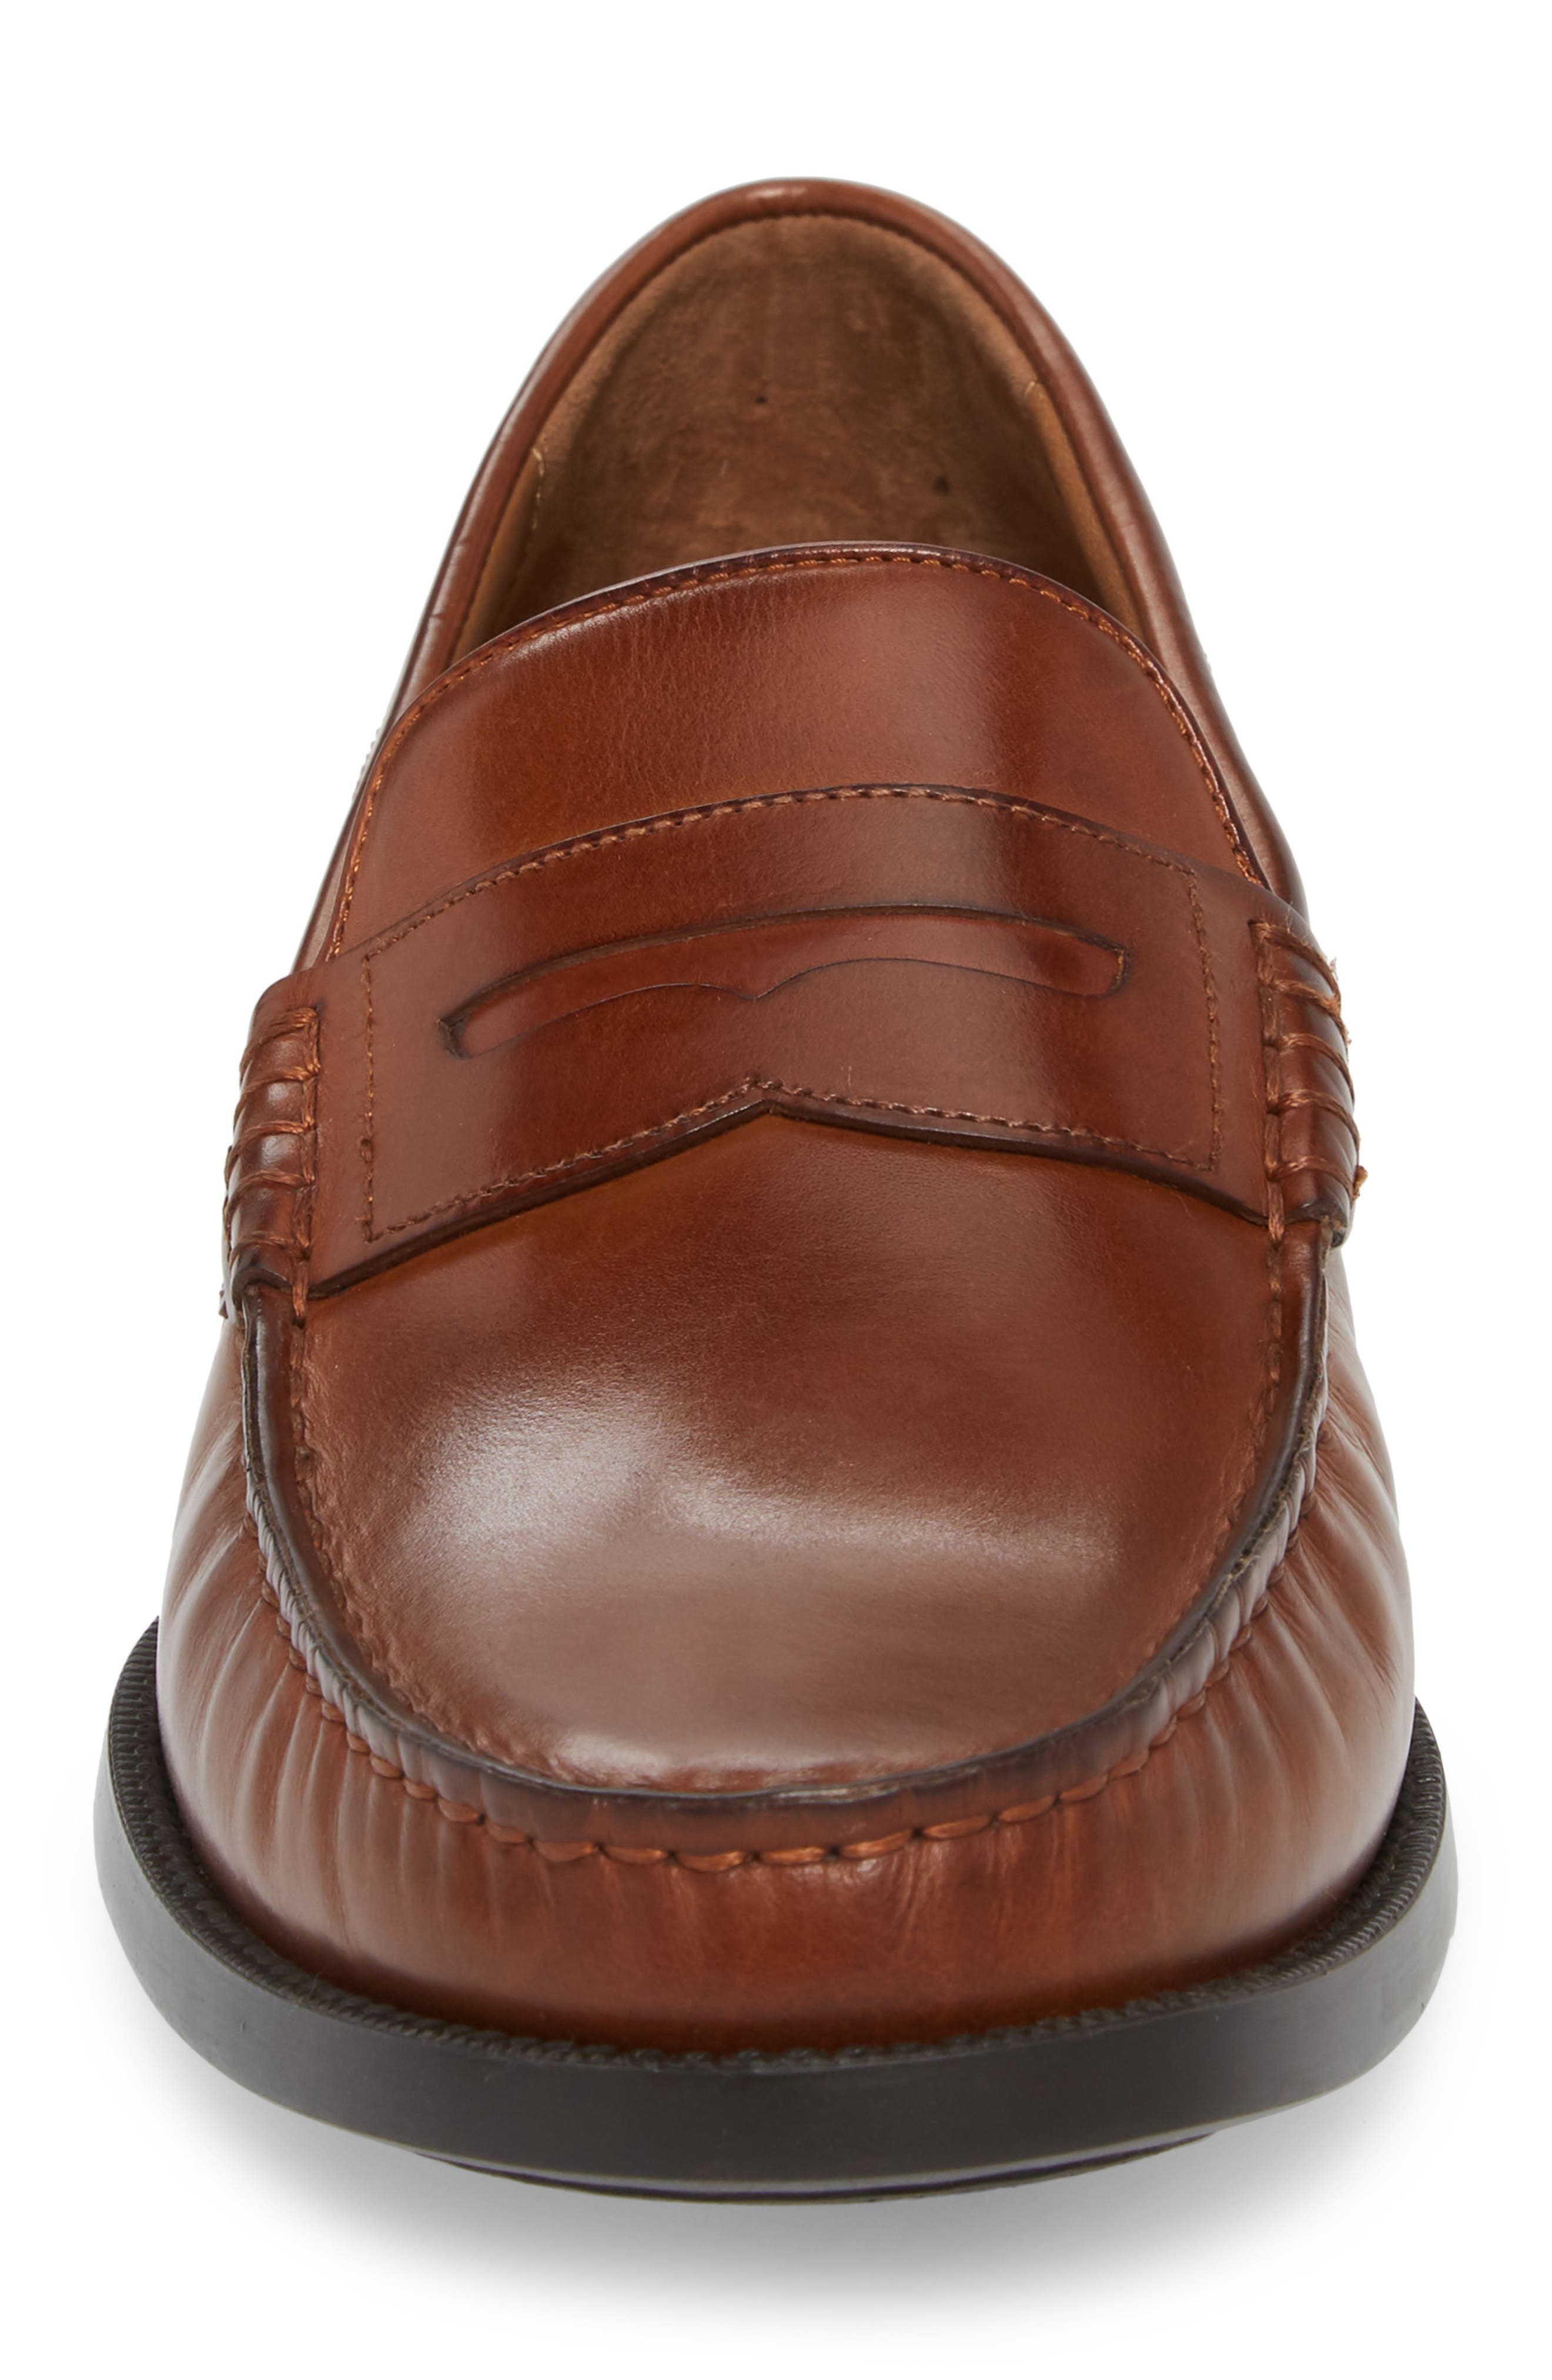 Chadwell Penny Loafer,                             Alternate thumbnail 4, color,                             Tan Leather